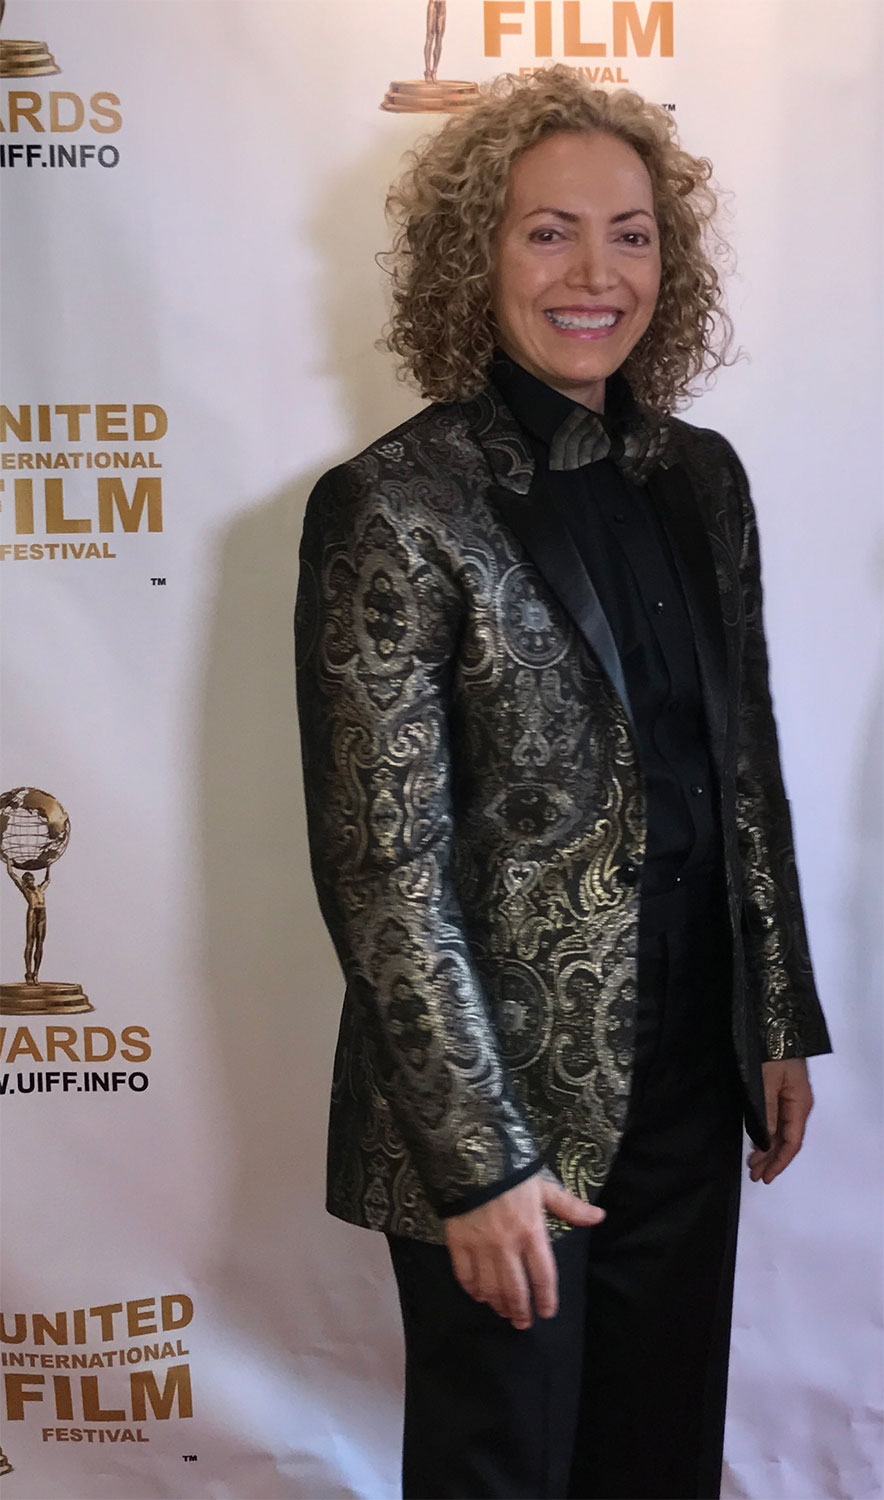 Sofia Wellman - Won Best Documentary Film Award - United International Film Awards - 2017 - Whats Love Got To Do With It - Film by Sofia Wellman